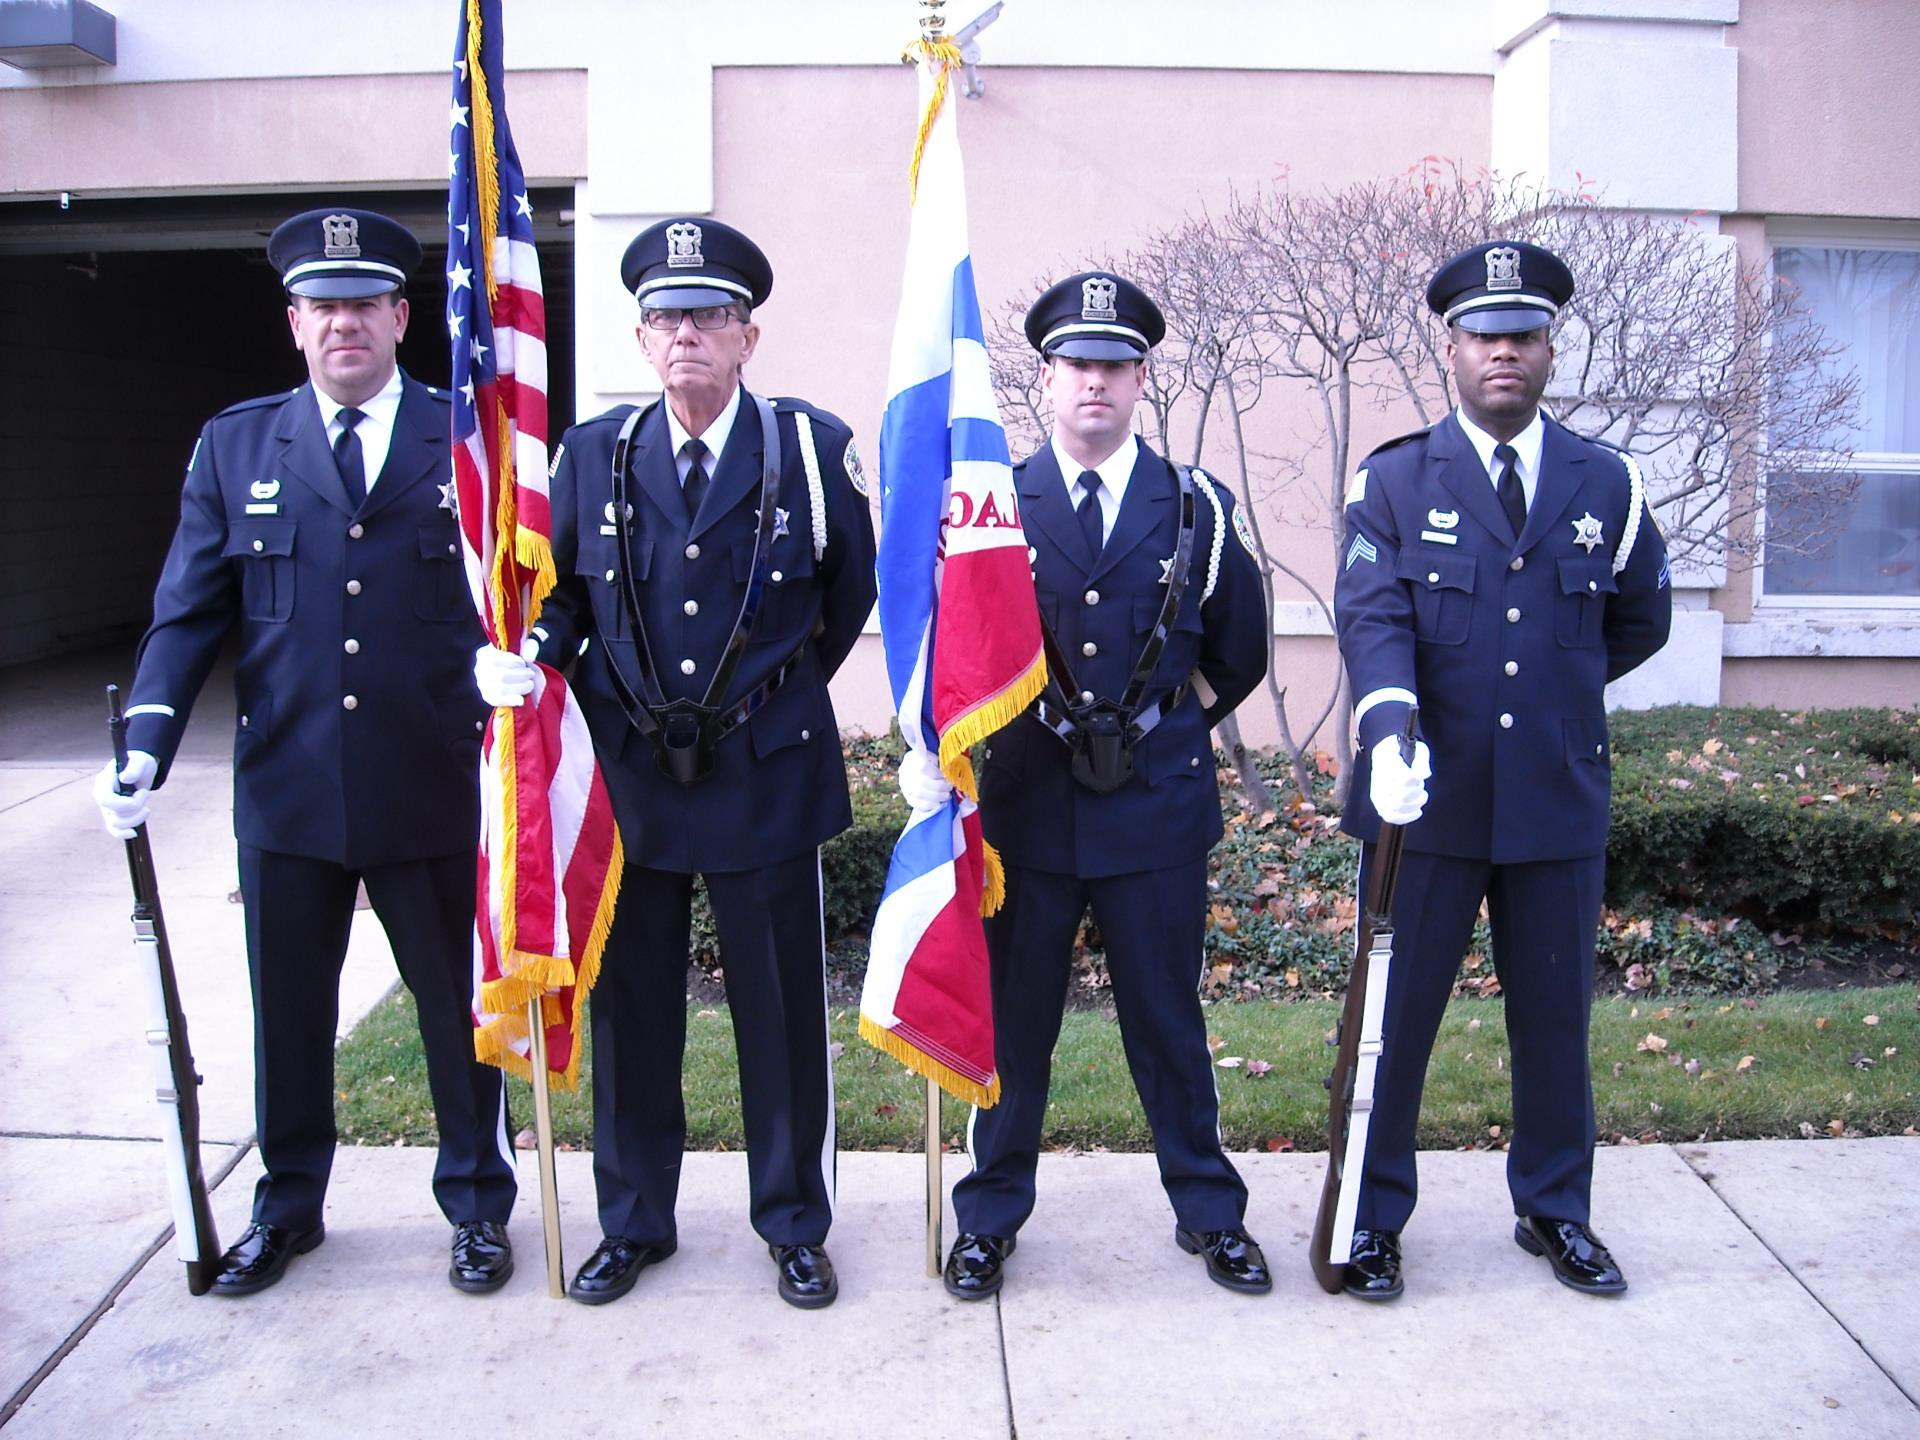 Left to Right:  Paul Malicki, Robert Crimmins, Nicholas Rice, Cpl. Vaughn Watts